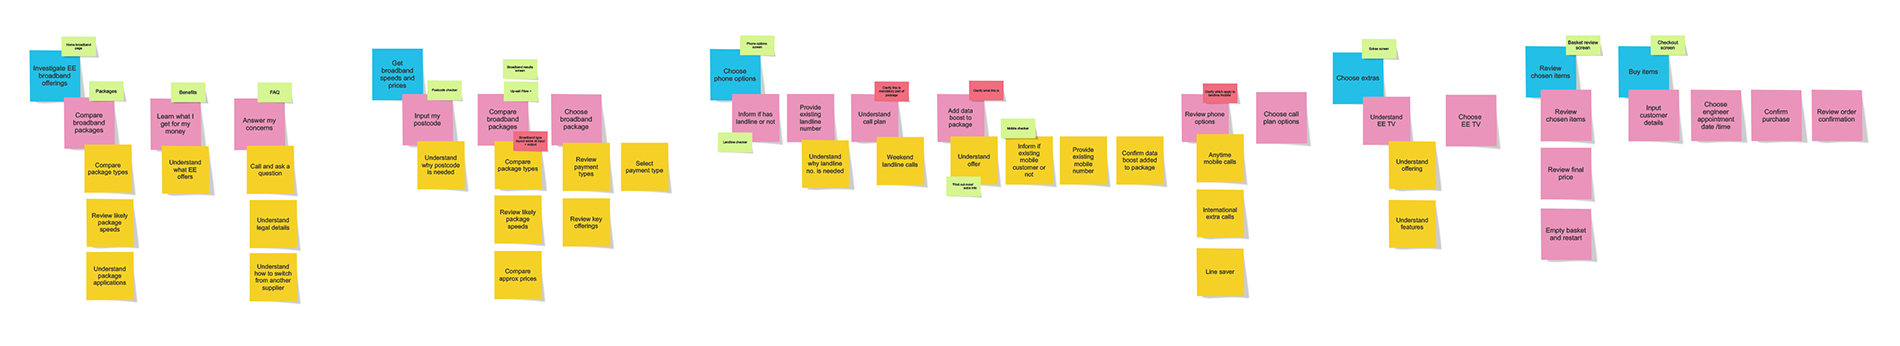 User story map, created as a framework to understand needs, priorities and value of existing features